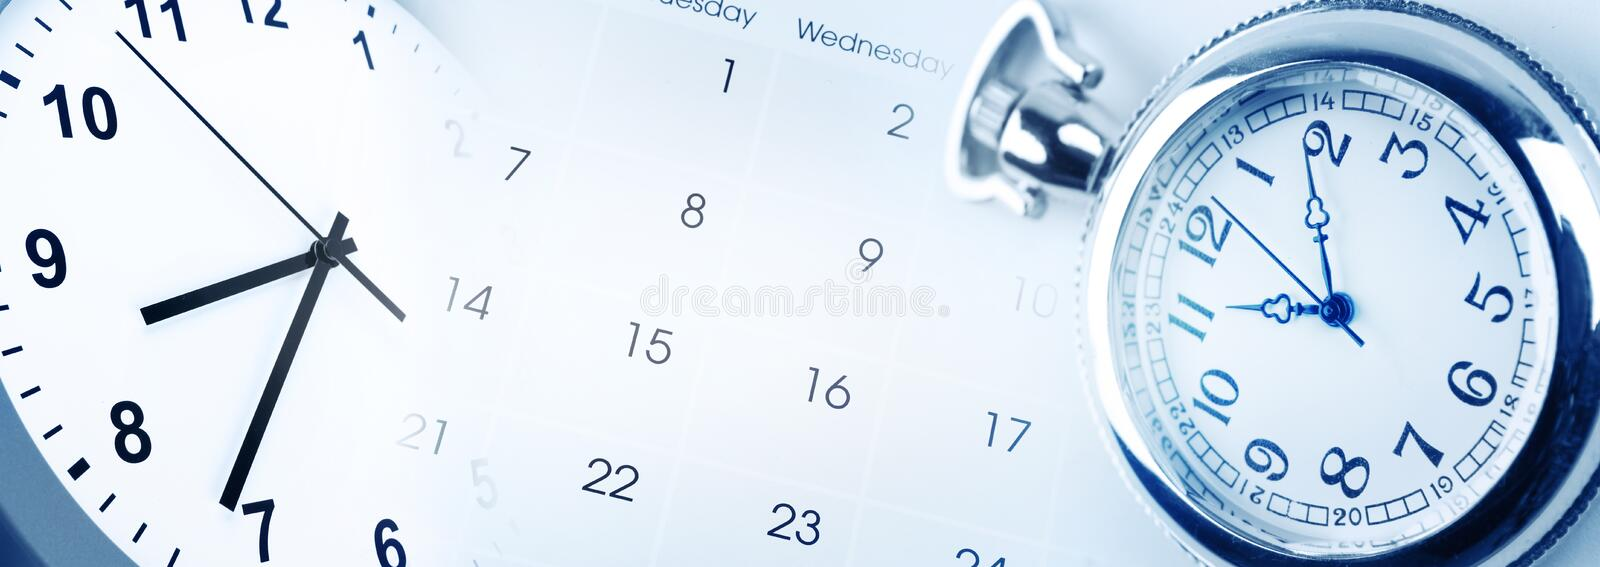 Time and calendar royalty free stock image